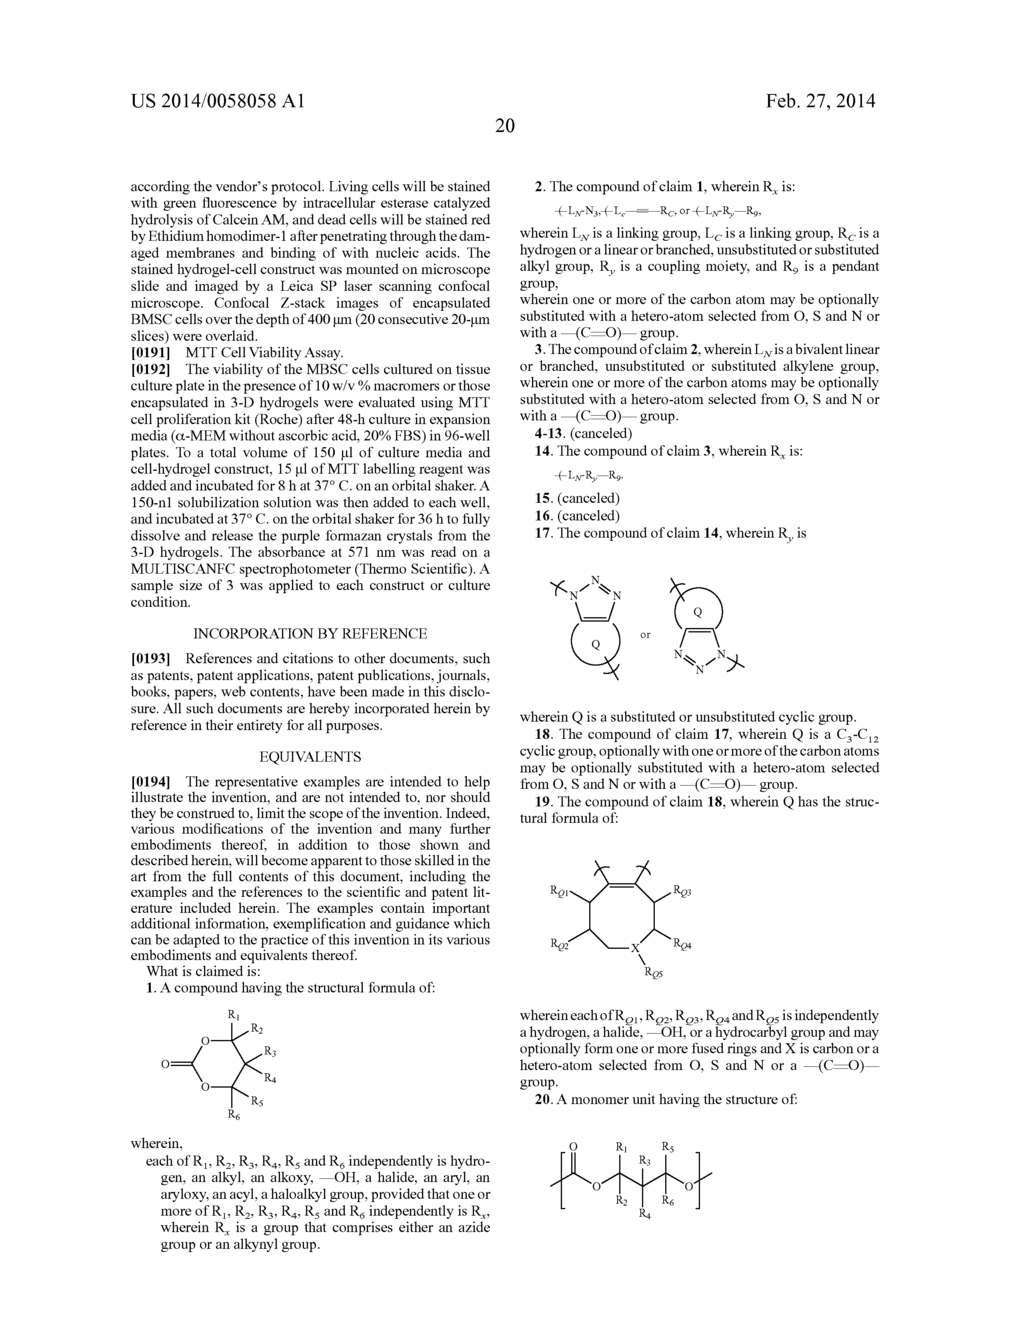 MONOMERS AND POLYMERS FOR FUNCTIONAL POLYCARBONATES AND     POLY(ESTER-CARBONATES) AND PEG-CO-POLYCARBONATE HYDROGELS - diagram, schematic, and image 41